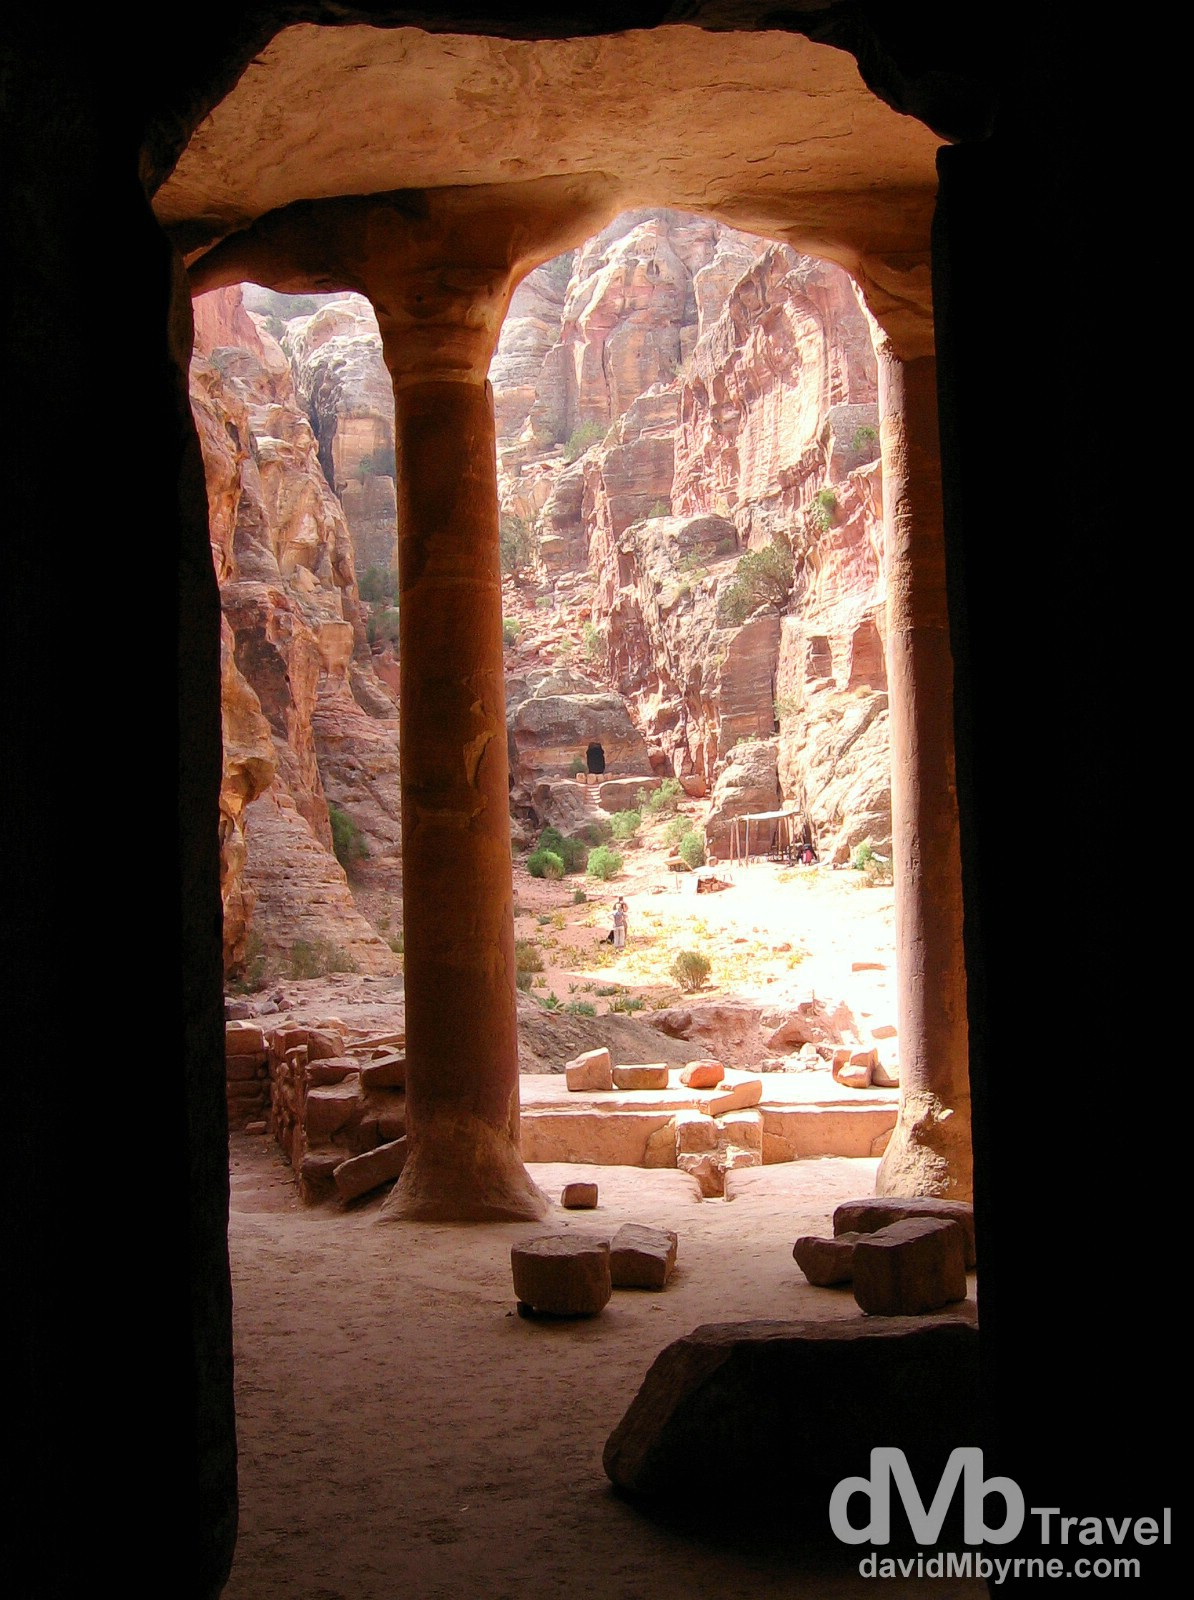 An abandoned building in Petra, Jordan. April 27, 2008.